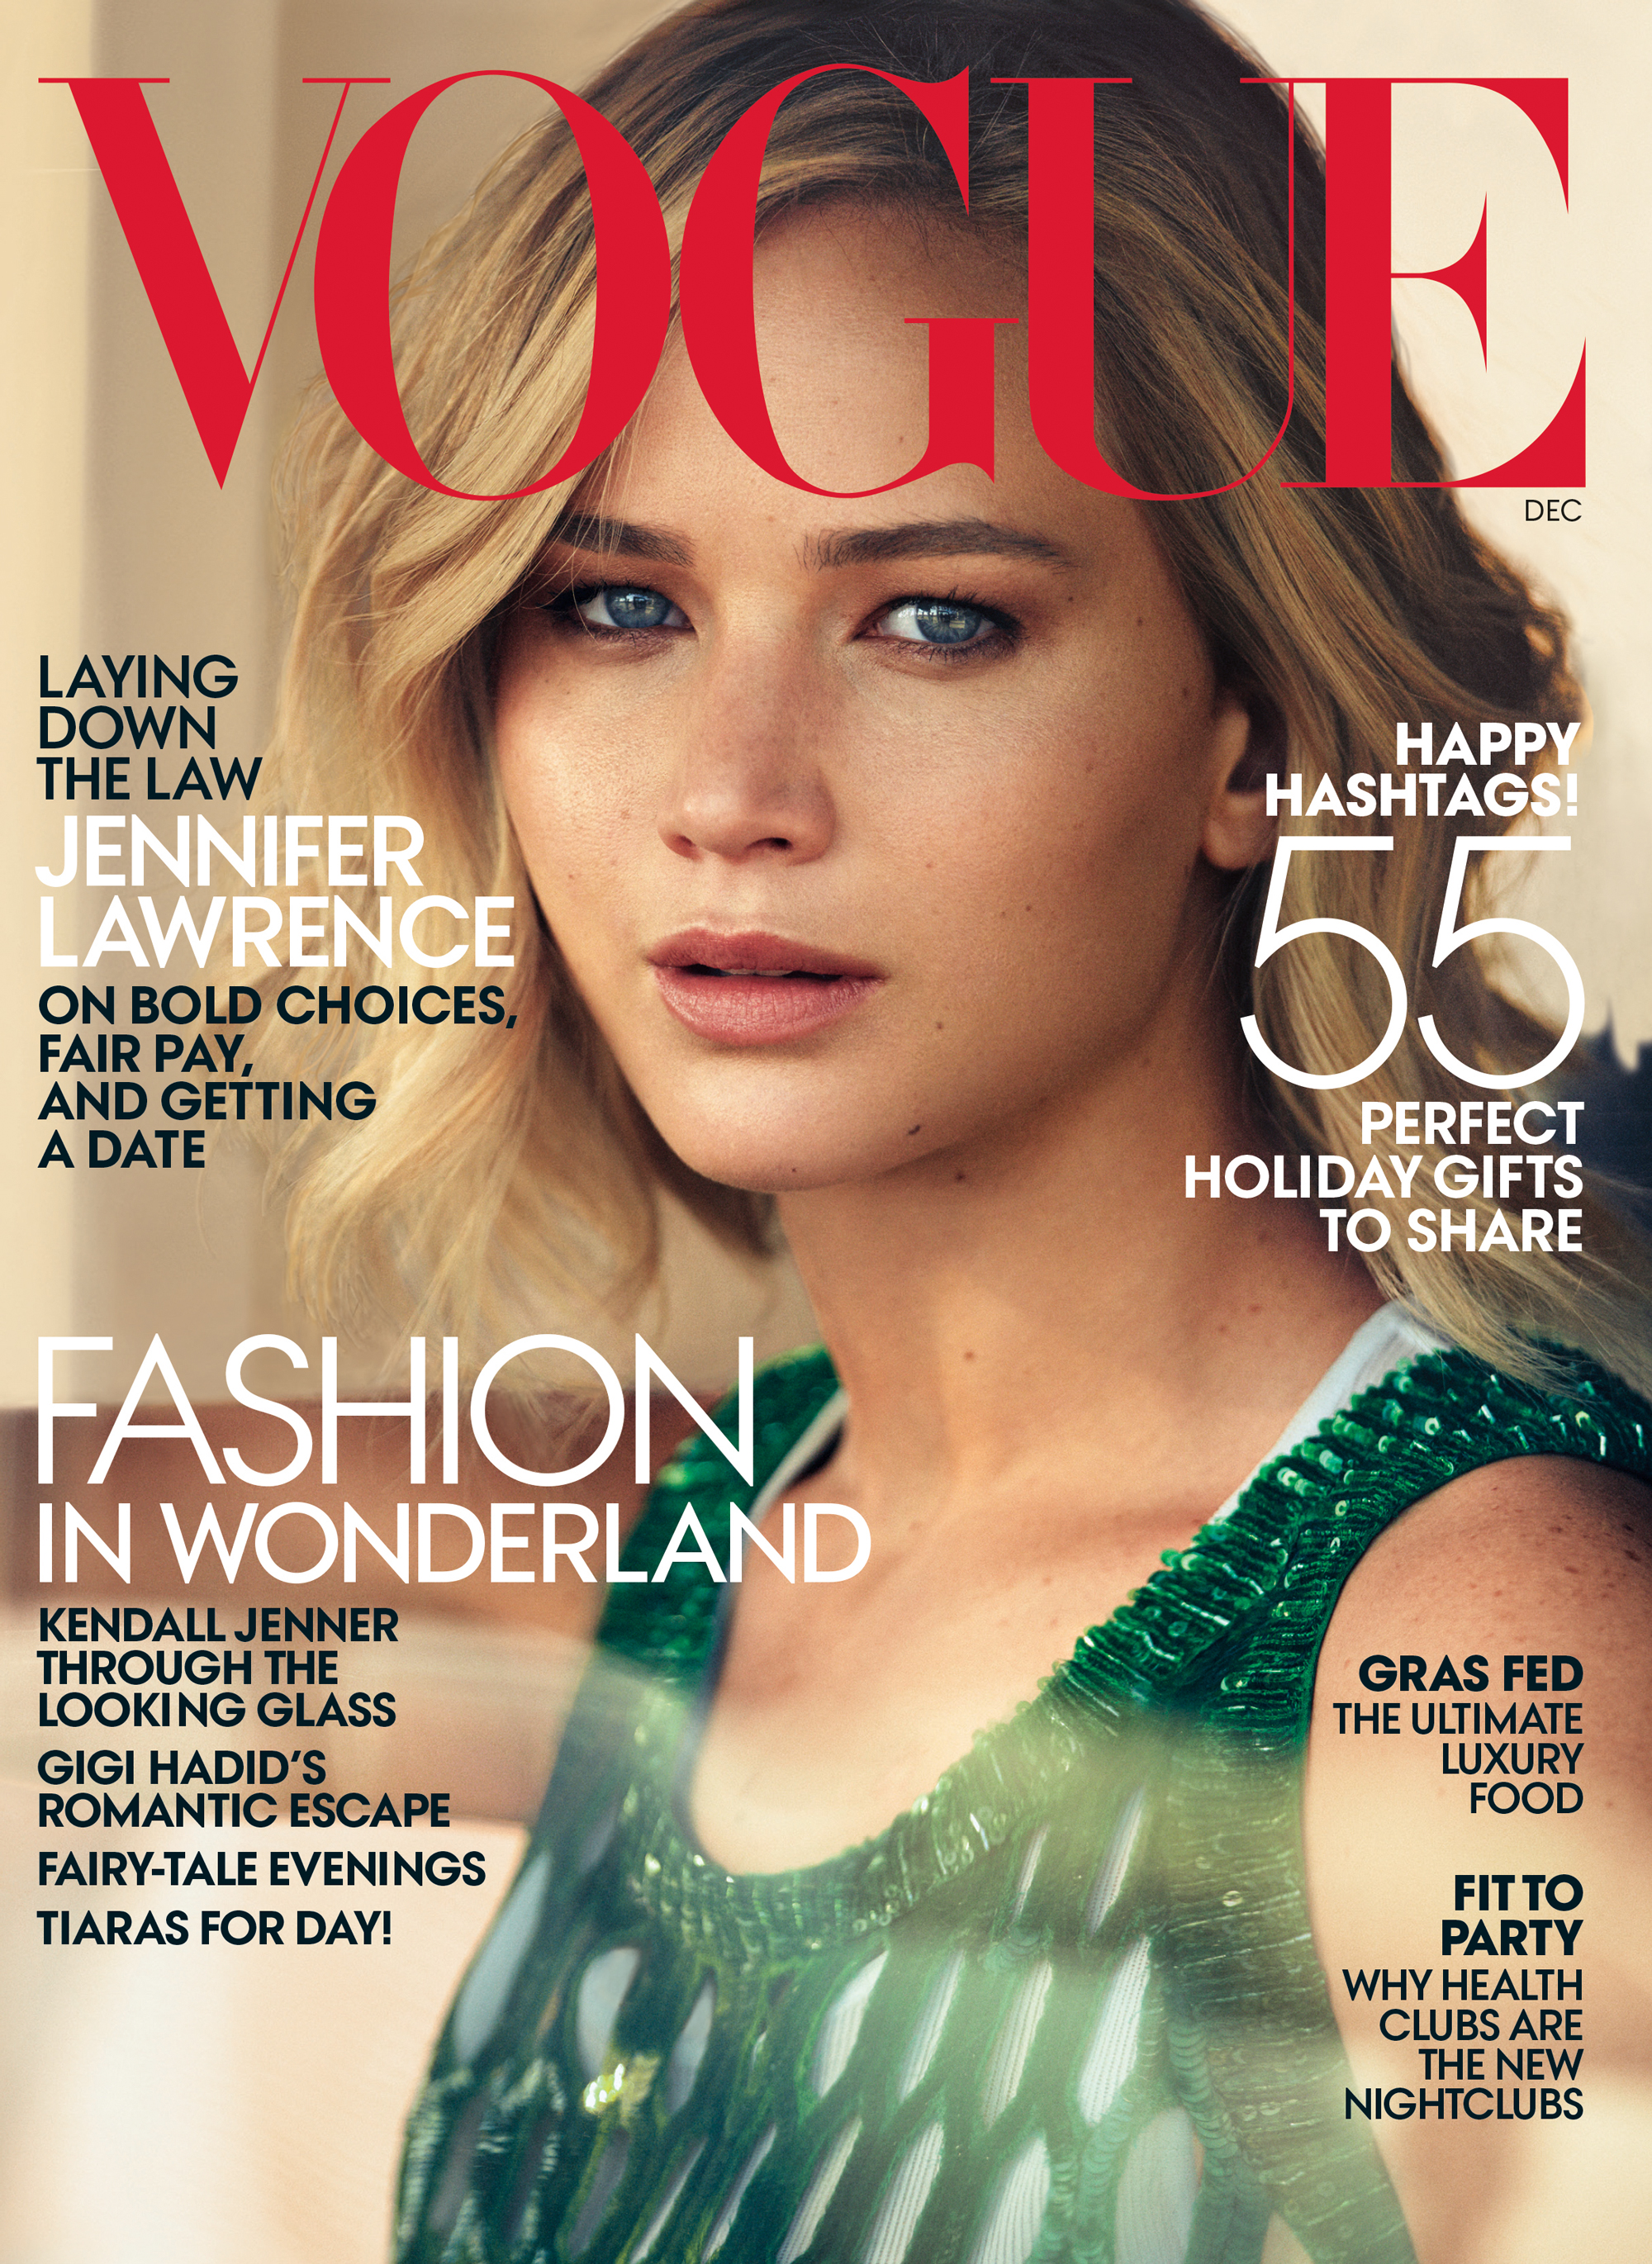 Best December 2015 Fashion Magazine Covers  Fashion